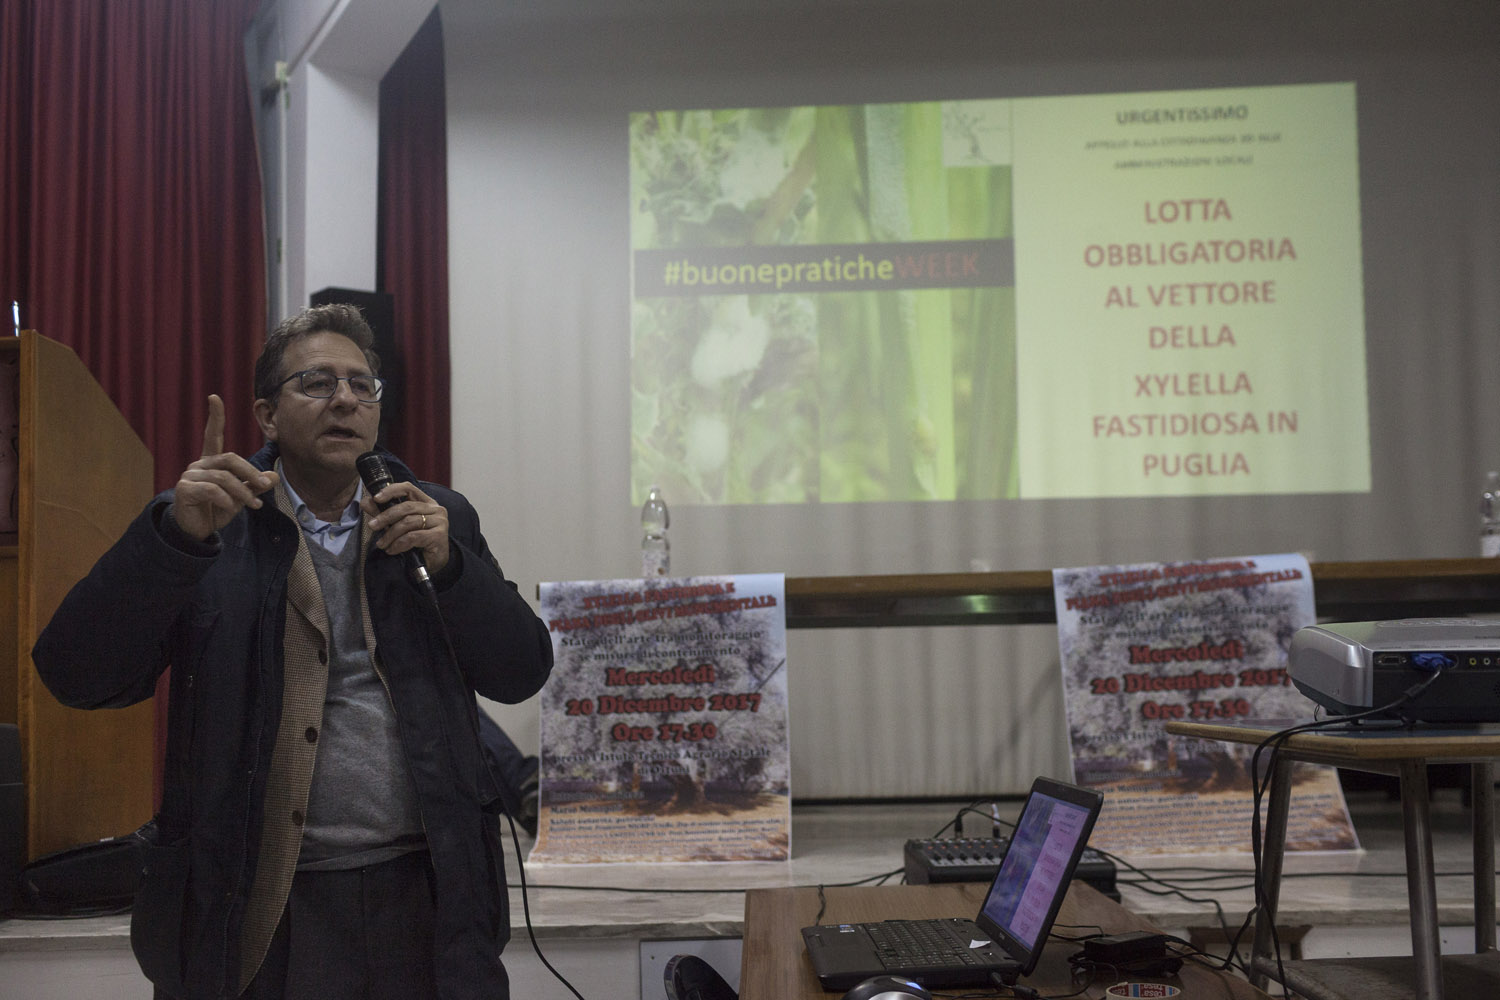 "A researcher from the CNR (National Research Council) of Bari explaining the authorities' containment plans of the outbreak and the ""obligatory measures against the vector of Xylella fastidiosa in Puglia"" at a public meeting in Ostuni. (2017)"